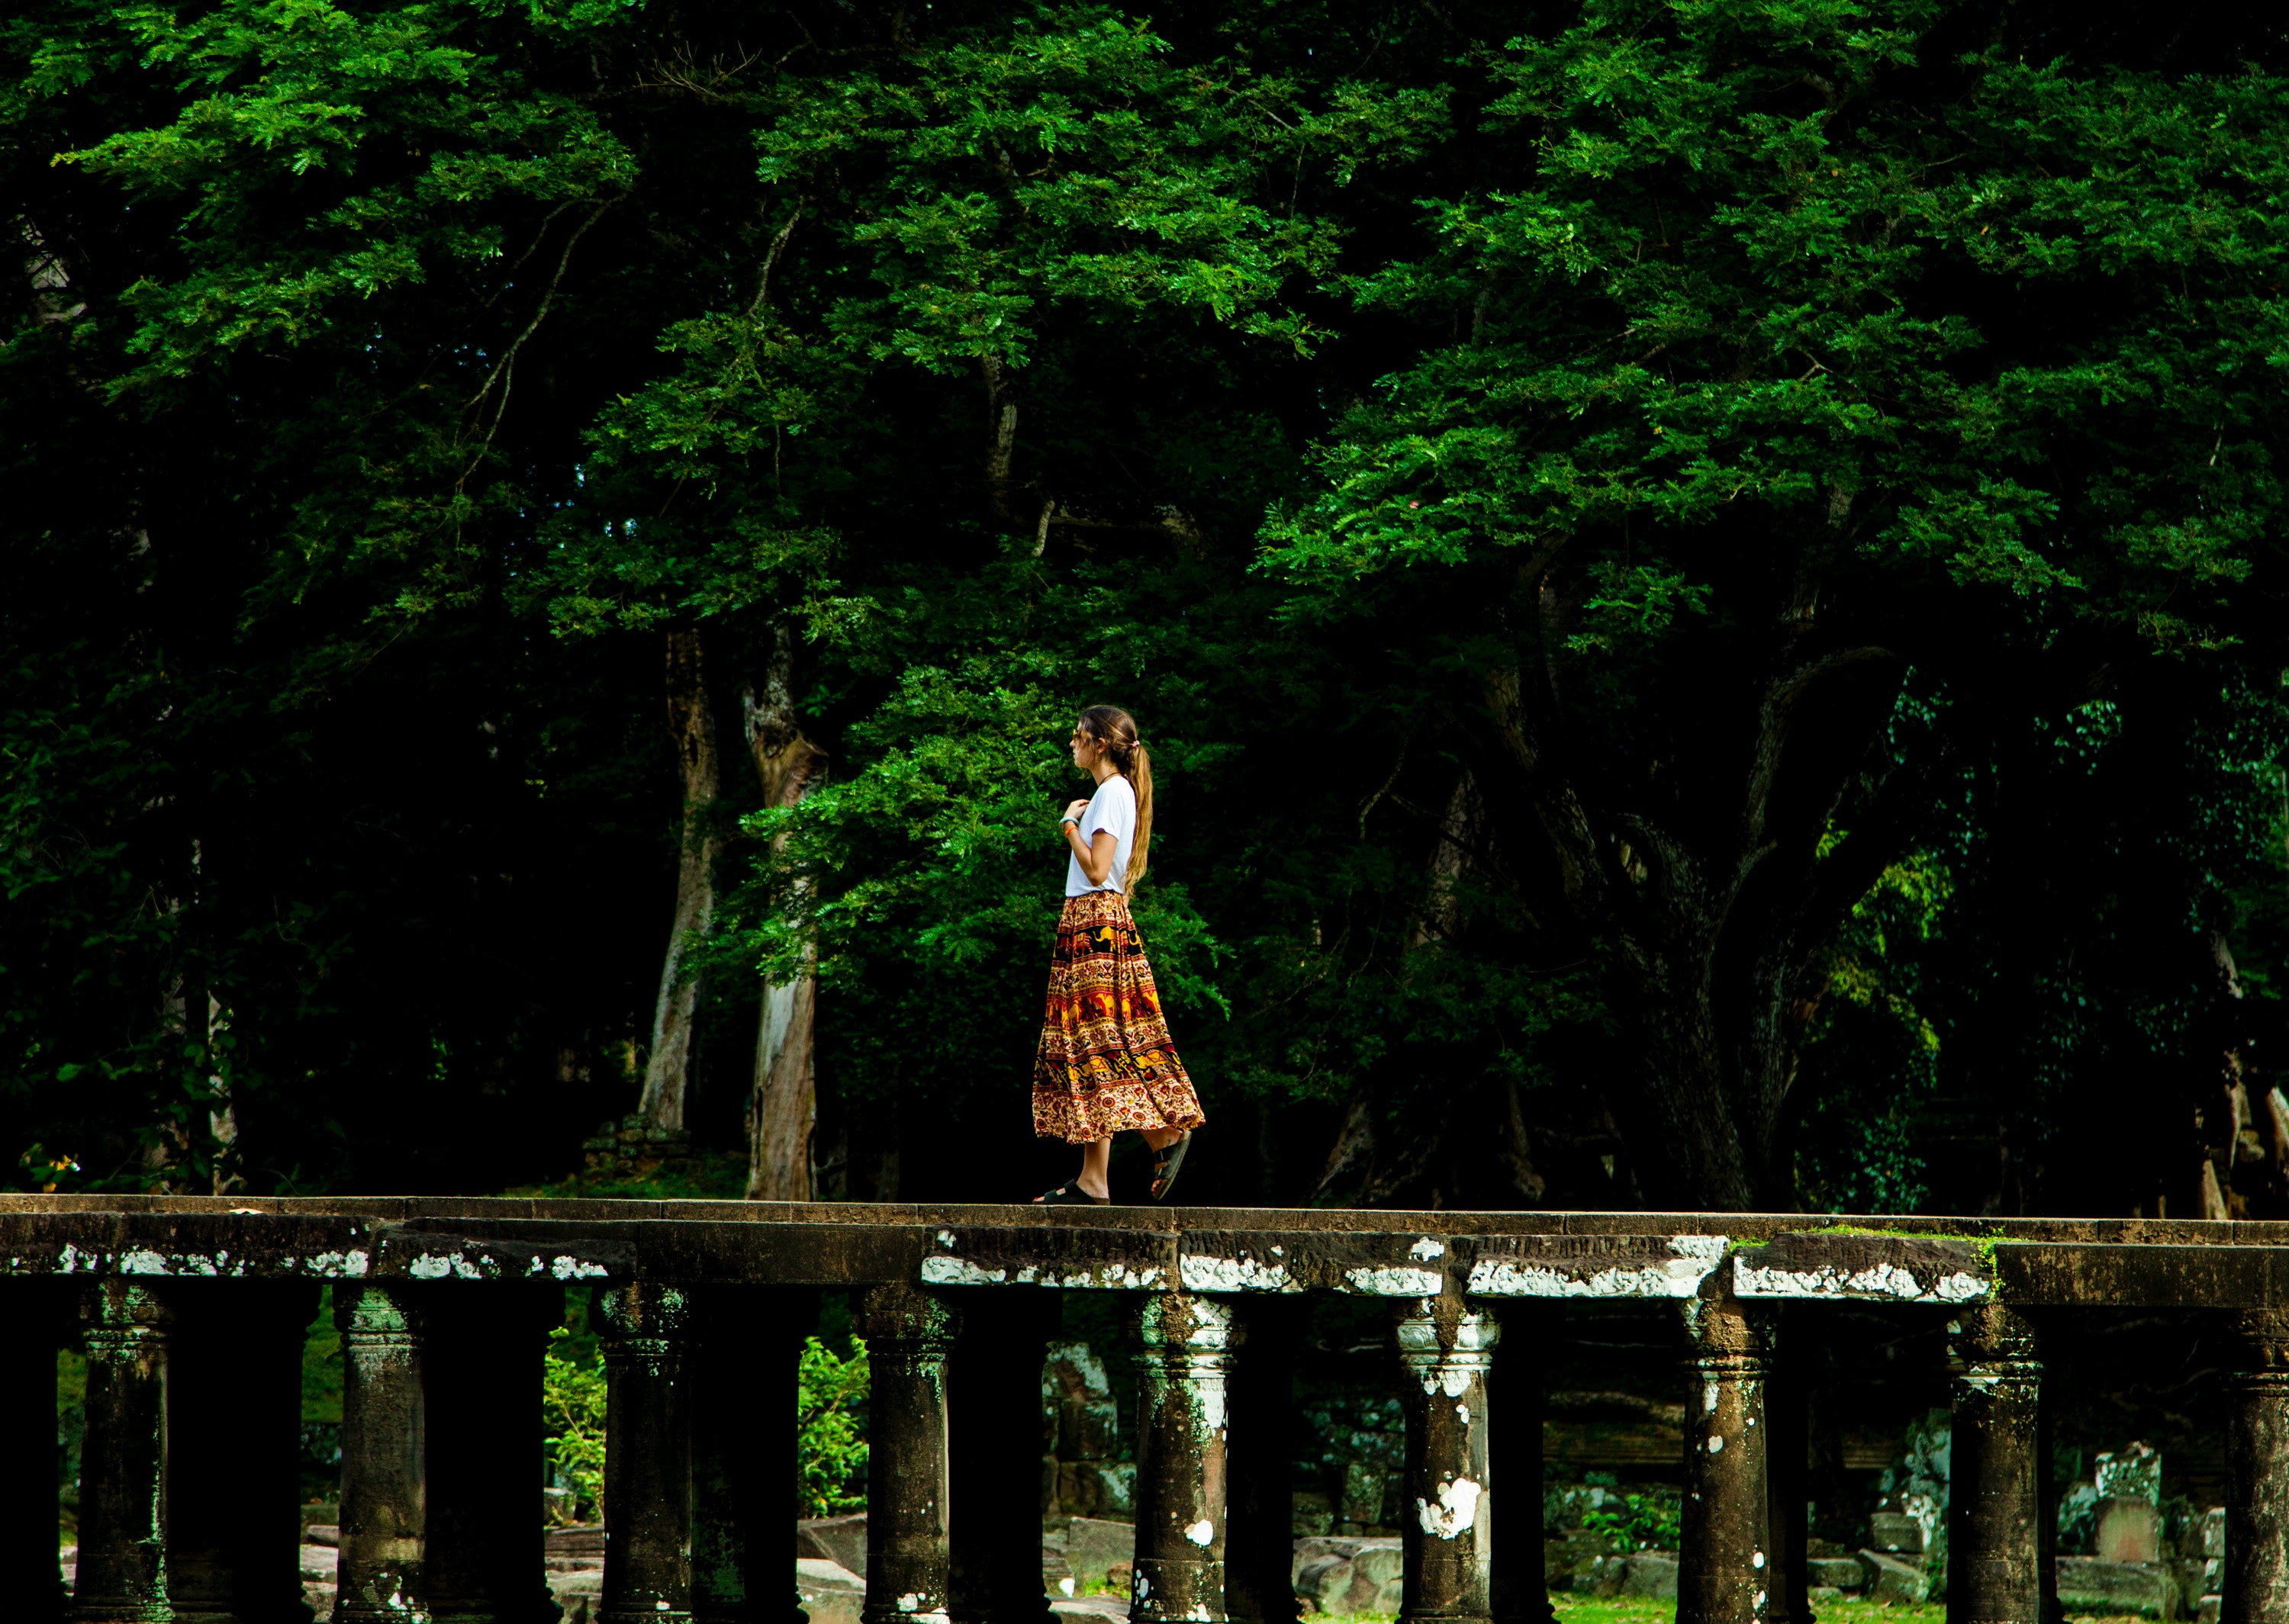 Woman walking on bridge surrounded by trees photo